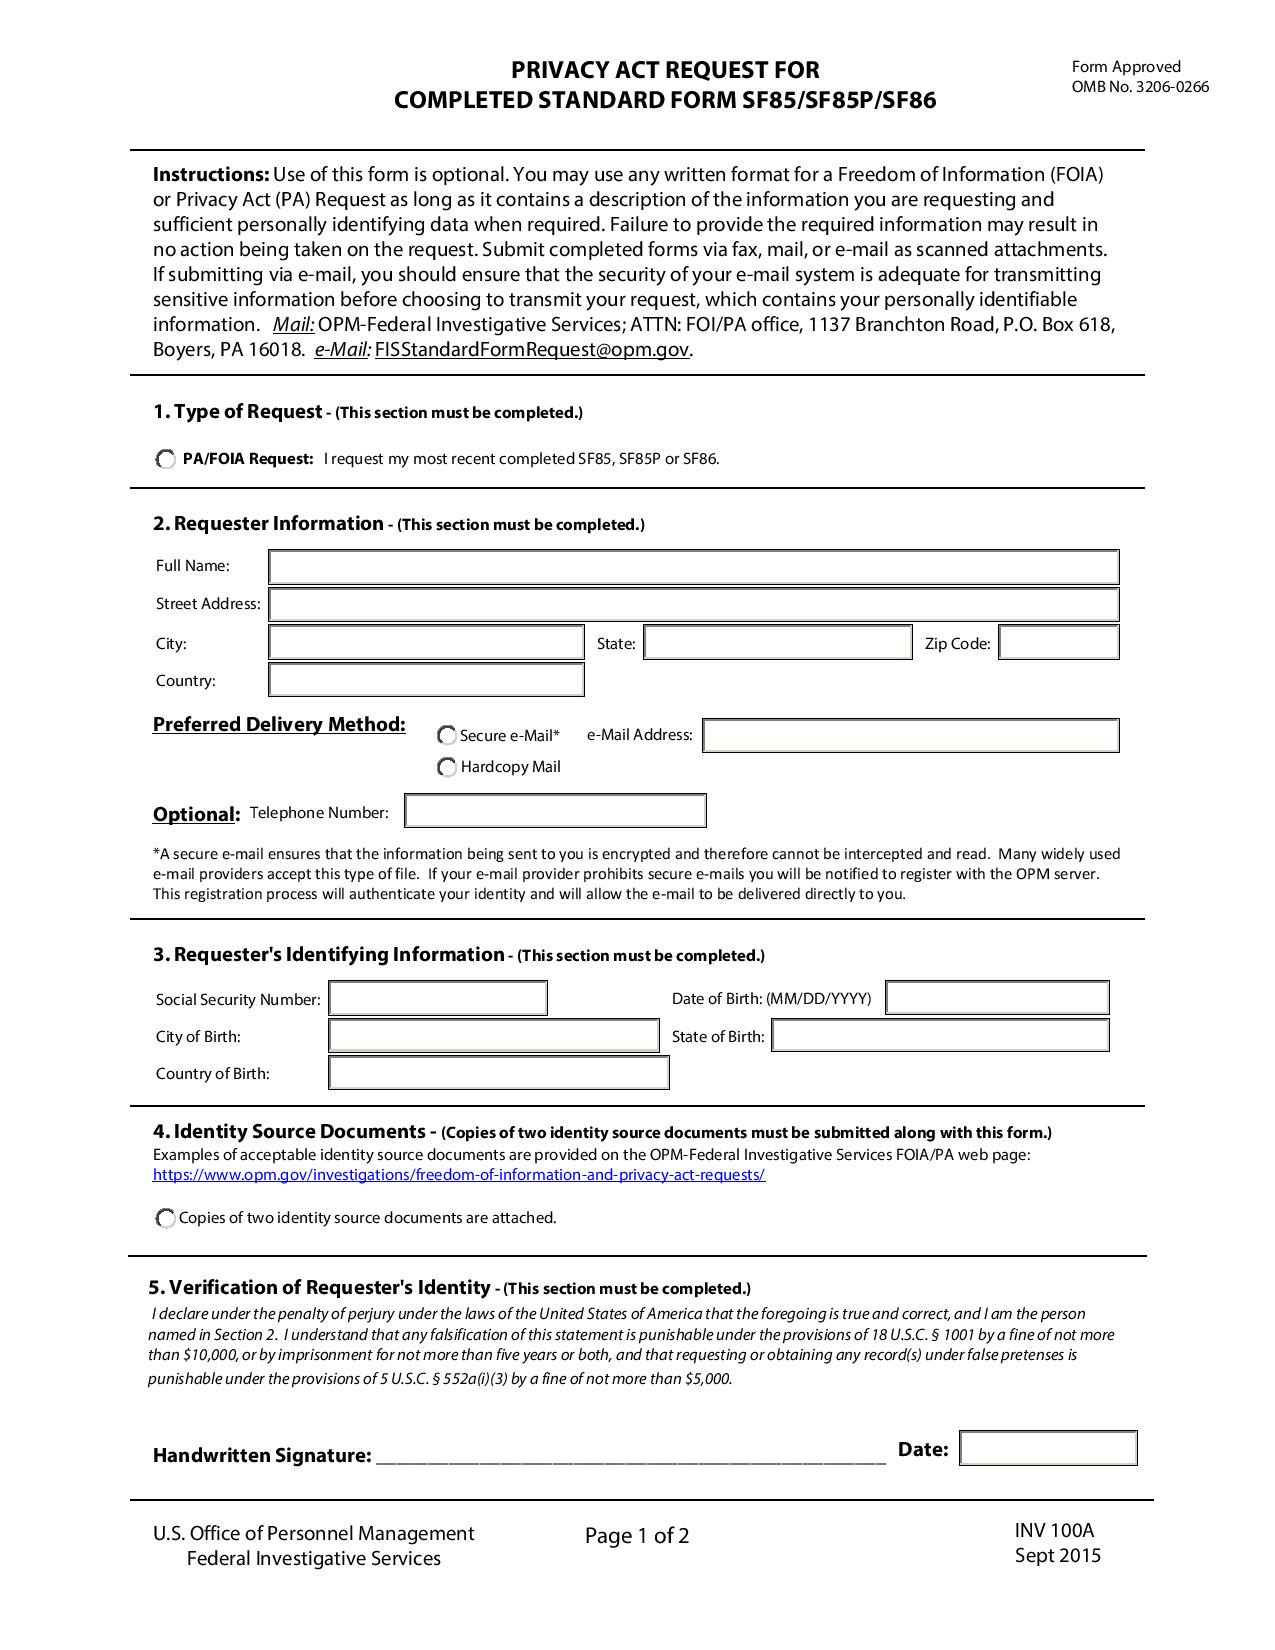 Free INV 100A, Privacy Act Request For Completed Standard Form ...